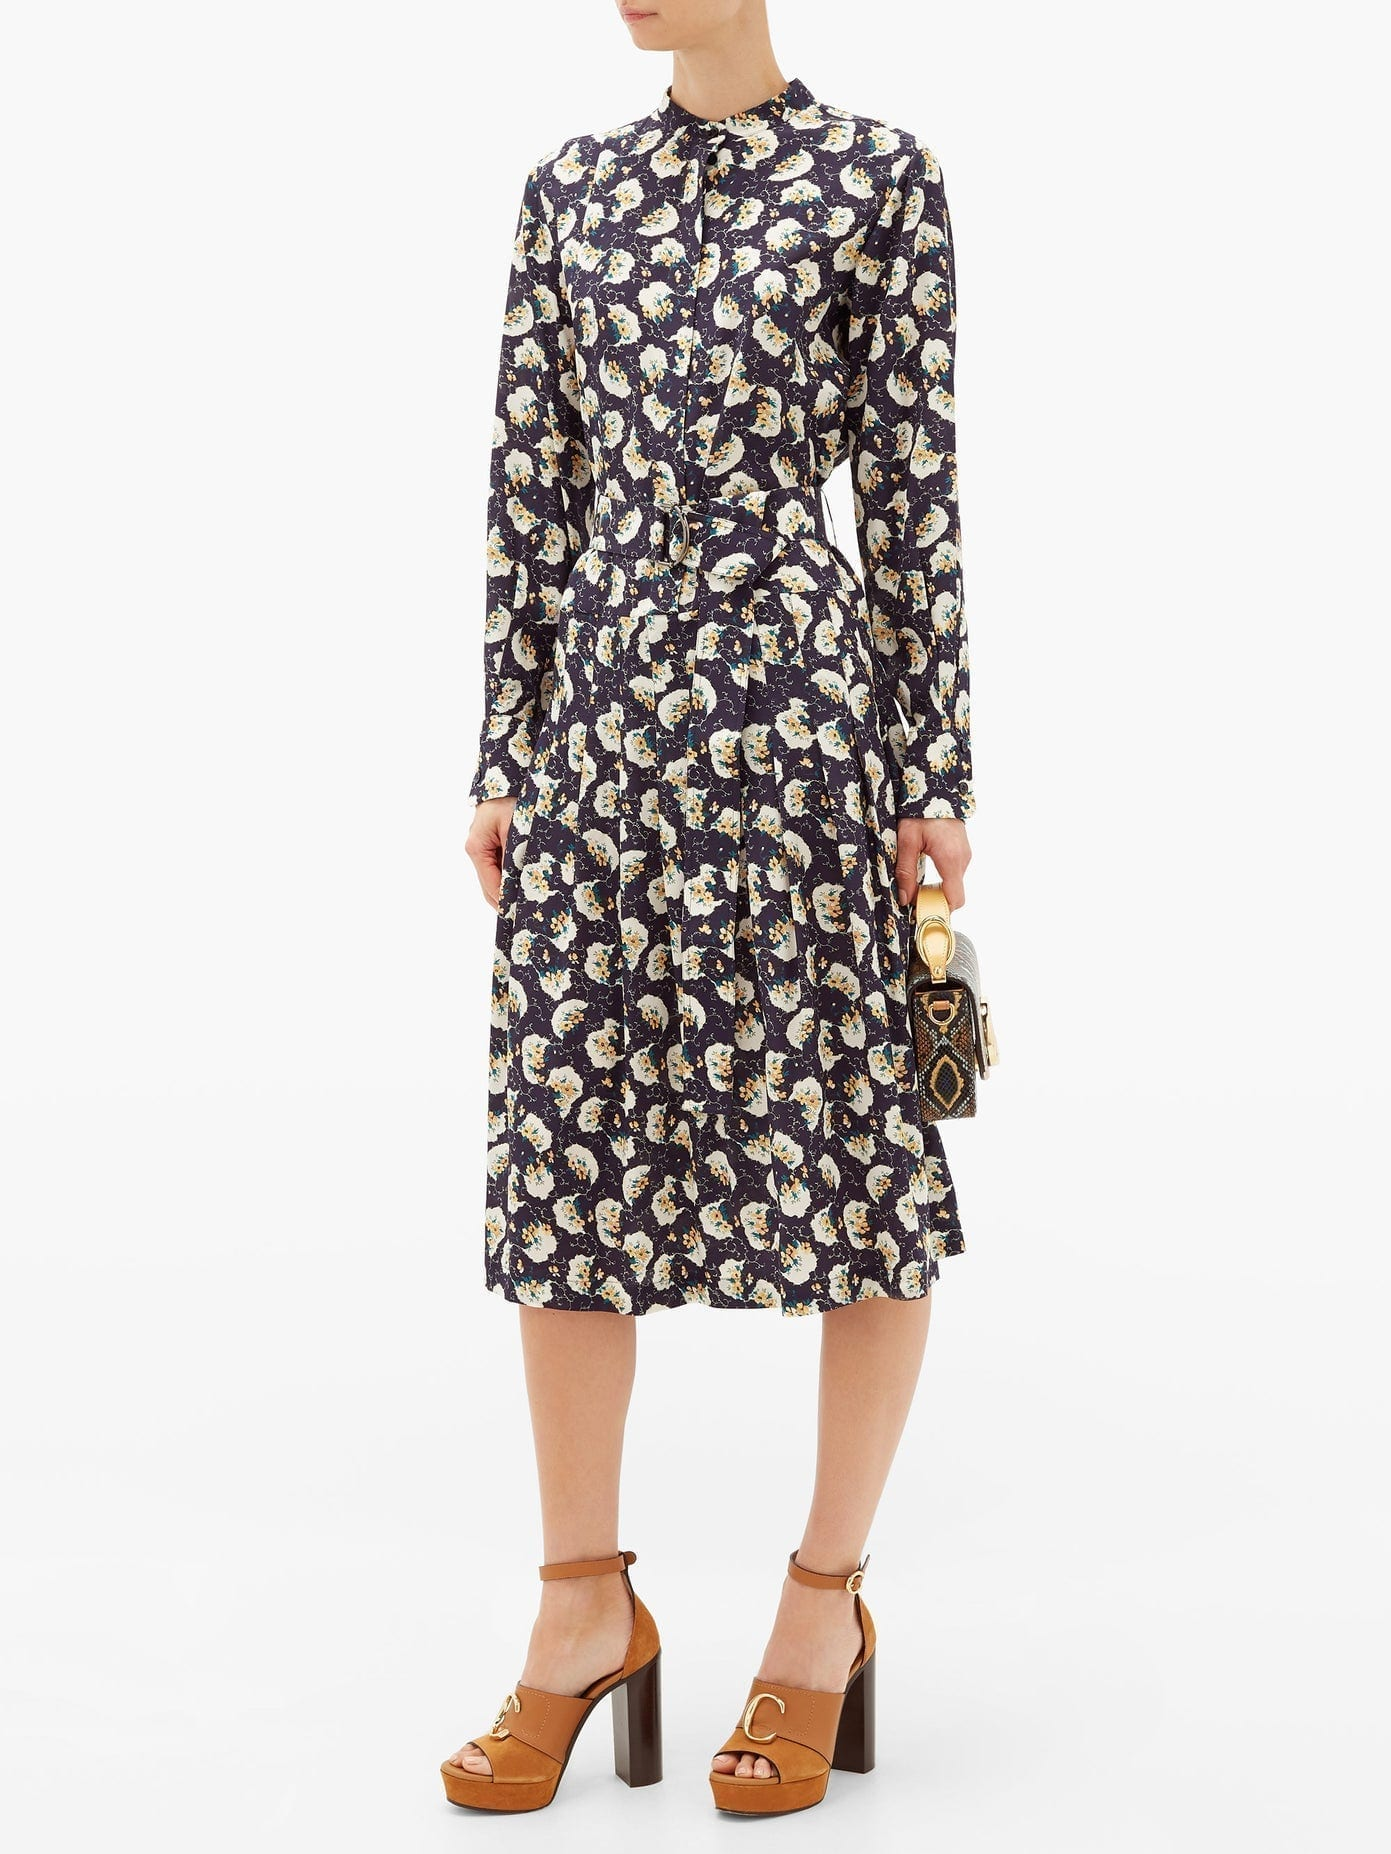 CHLOÉ Belted Pintucked Floral-print Silk Shirt Dress